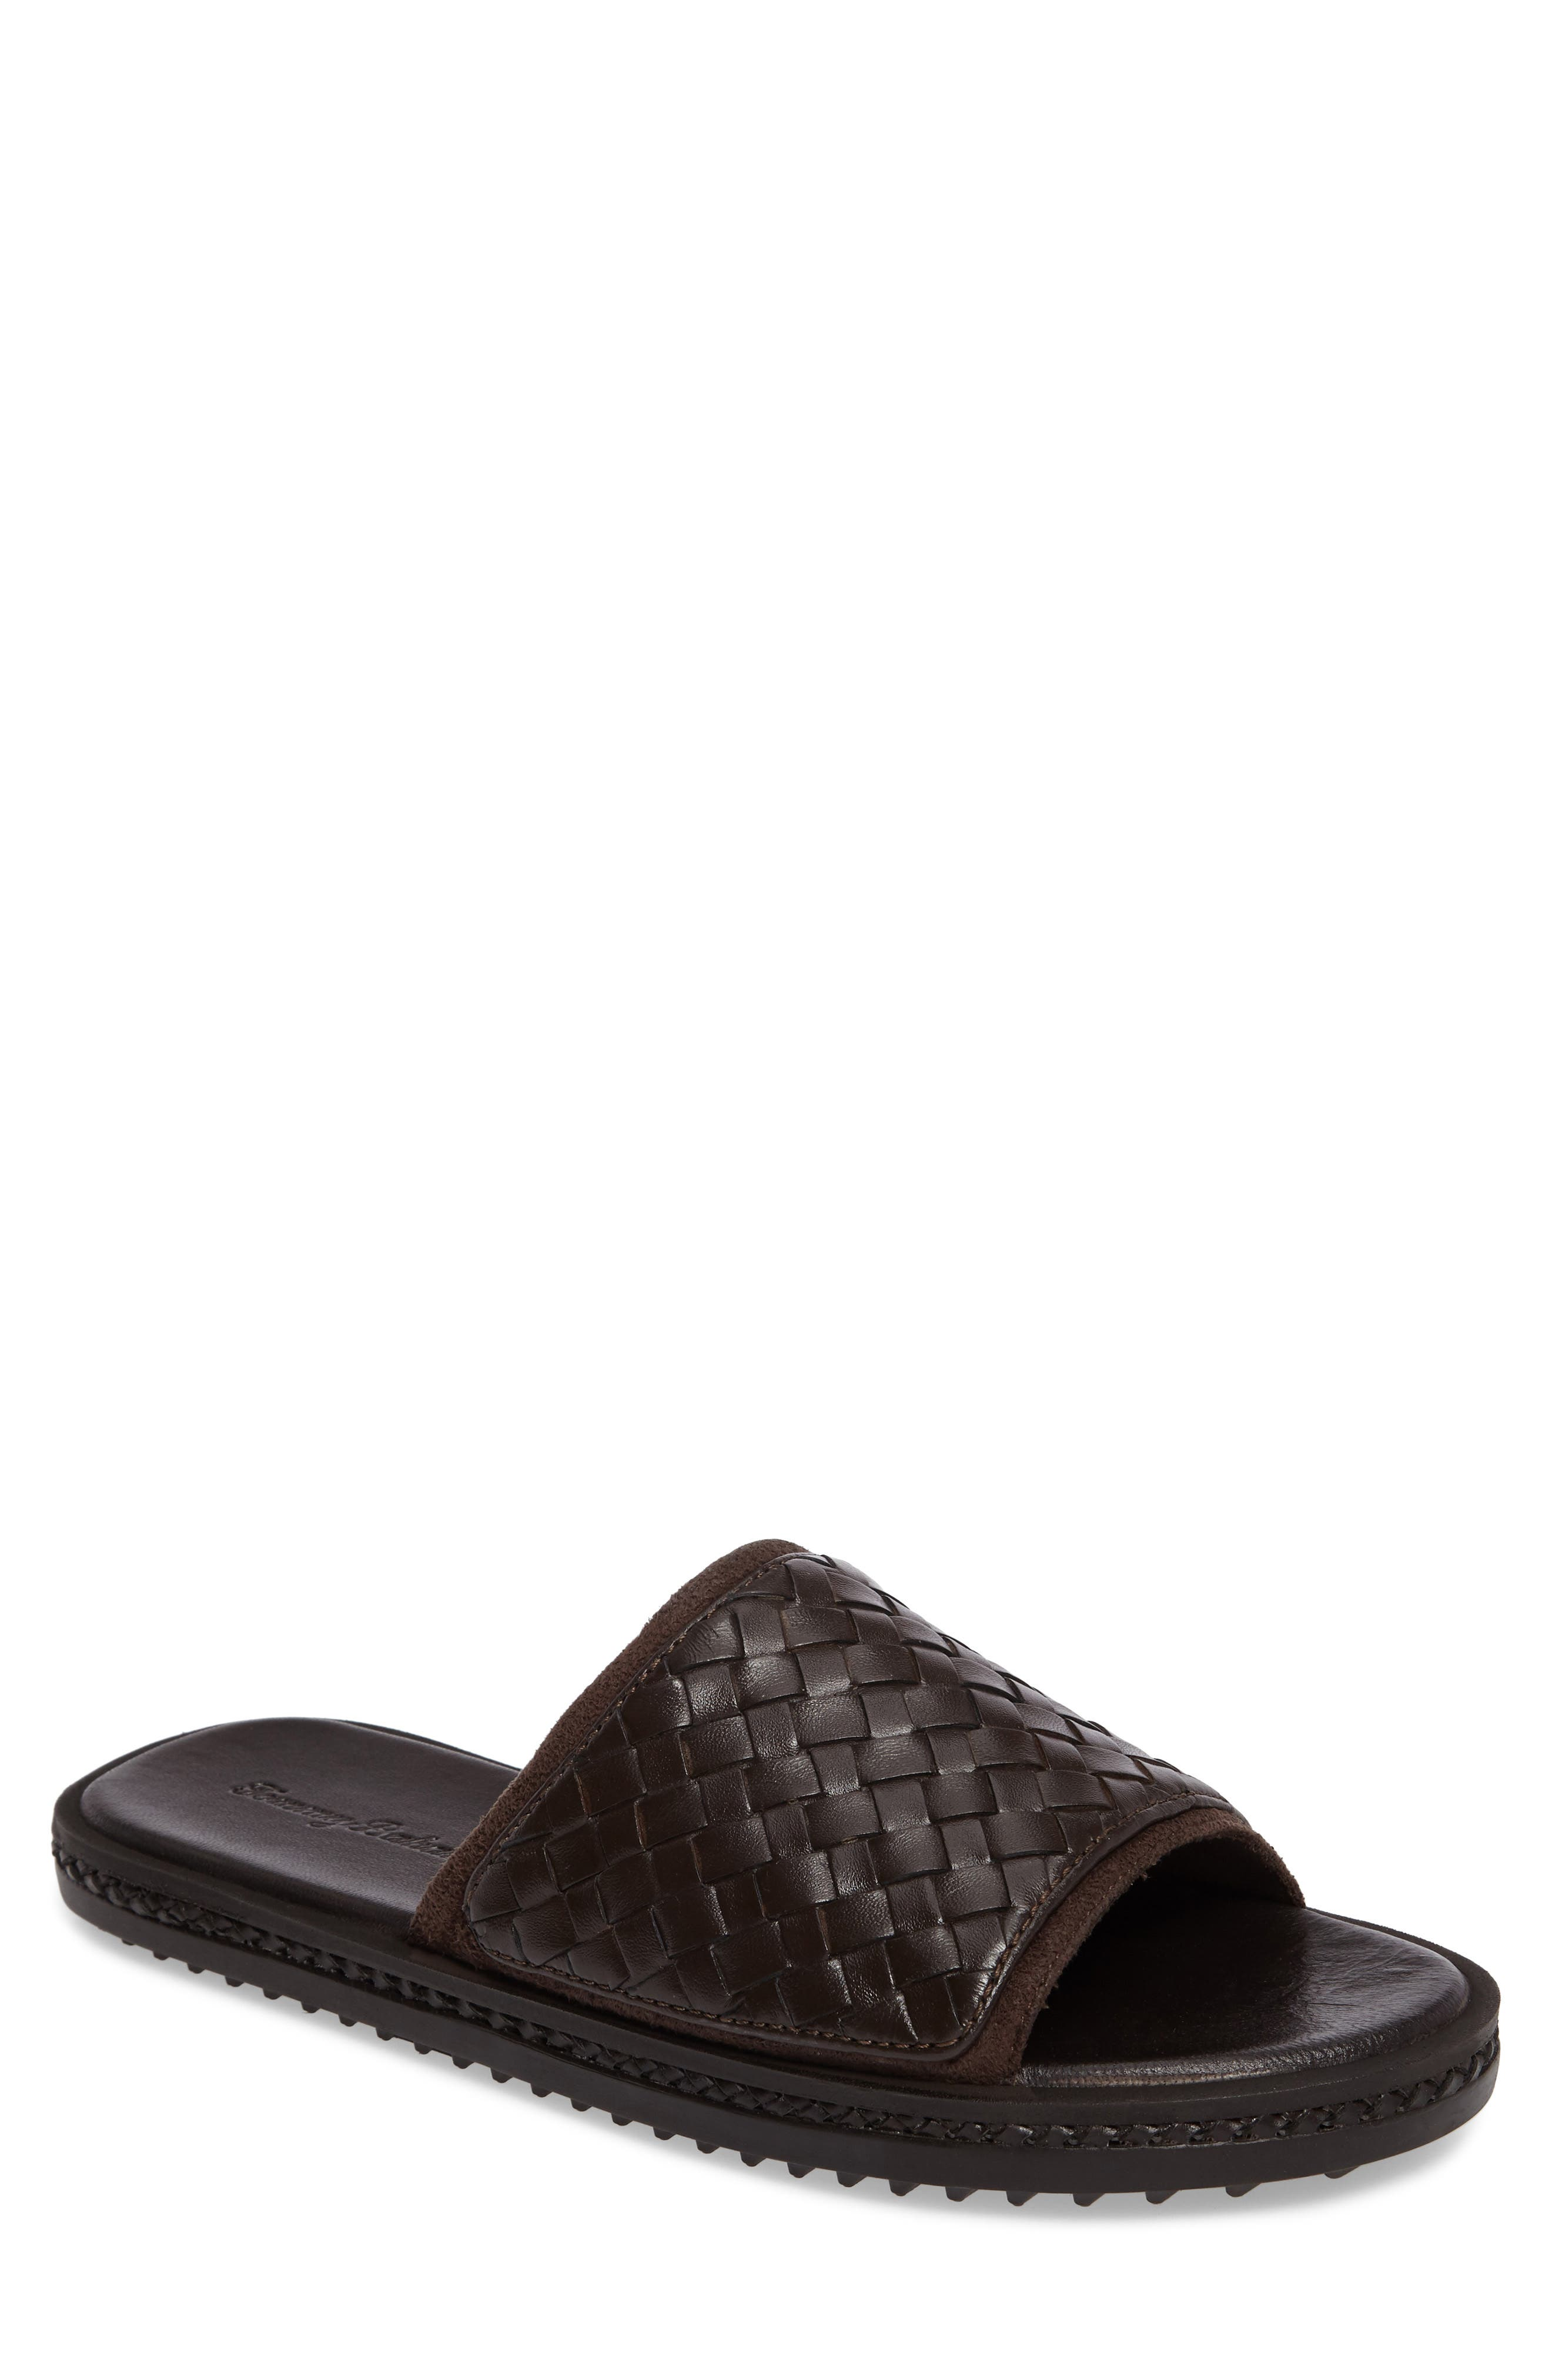 Shore Crest Woven Slide Sandal,                         Main,                         color, Dark Brown